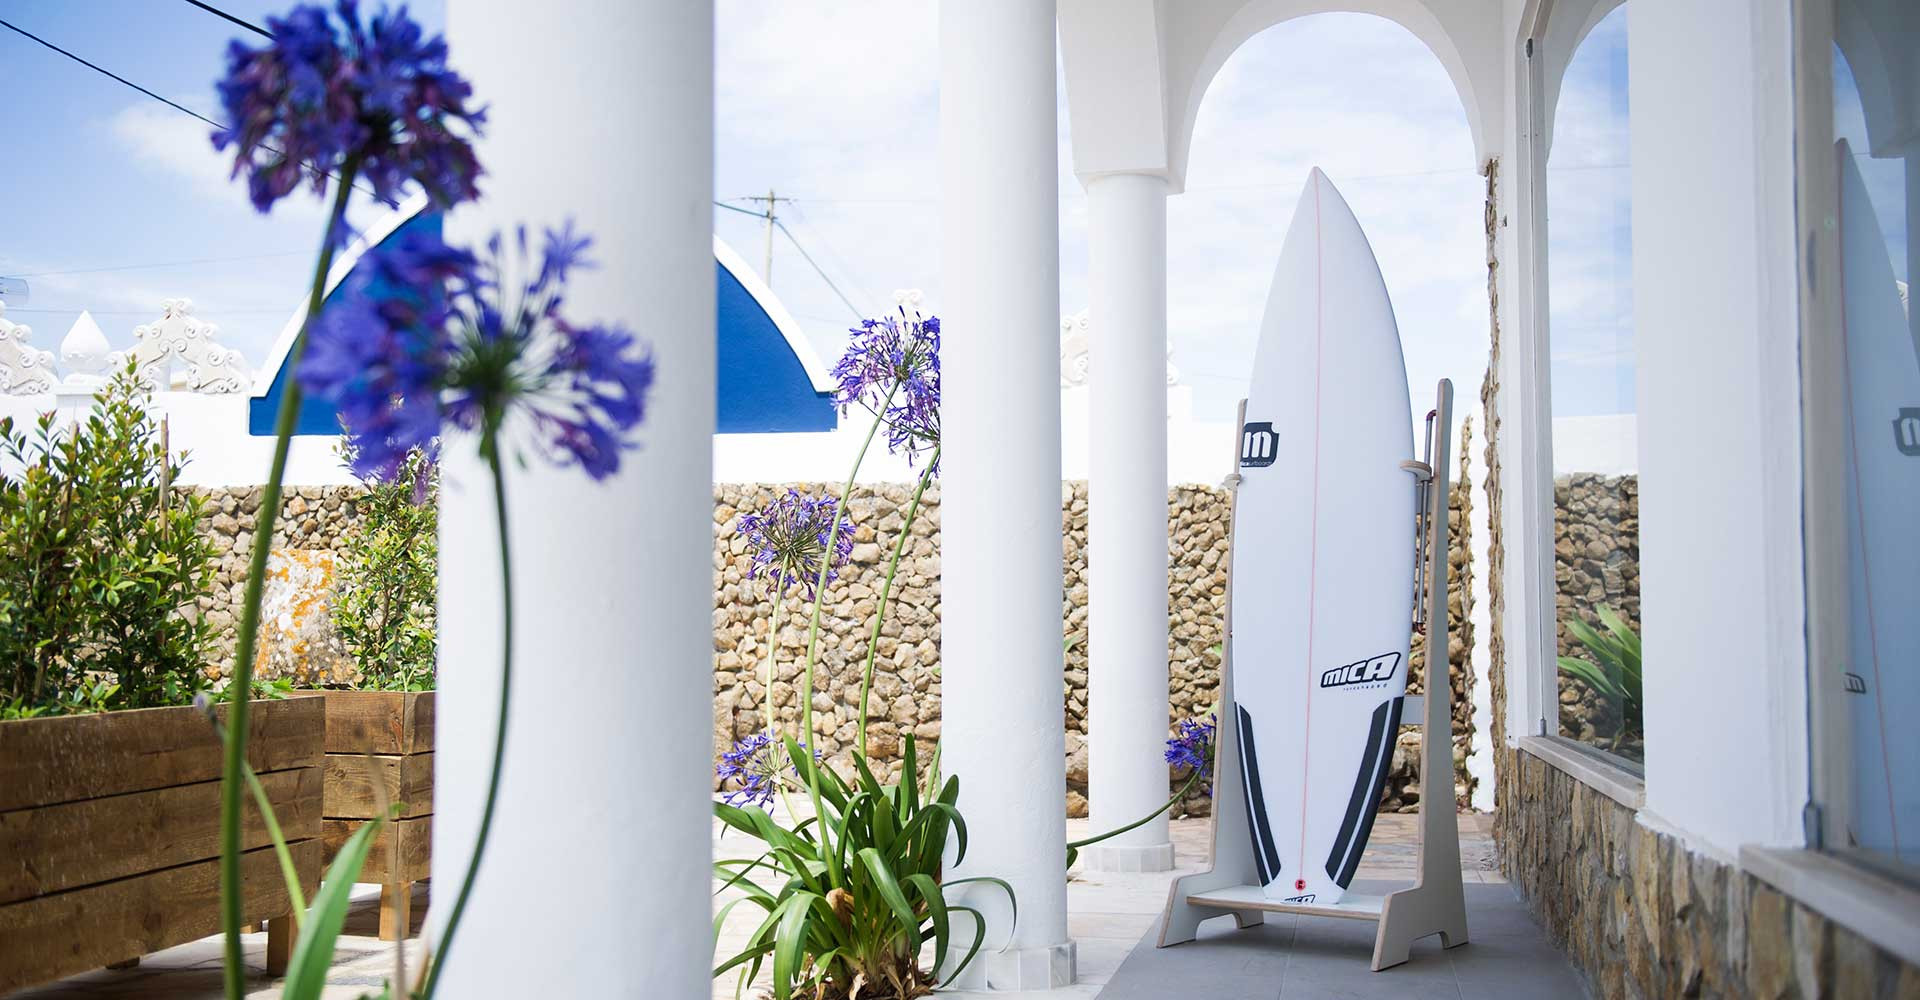 Shaper Mica Lourenço shapes custom made high performance surfboards in Ericeira, Portugal.